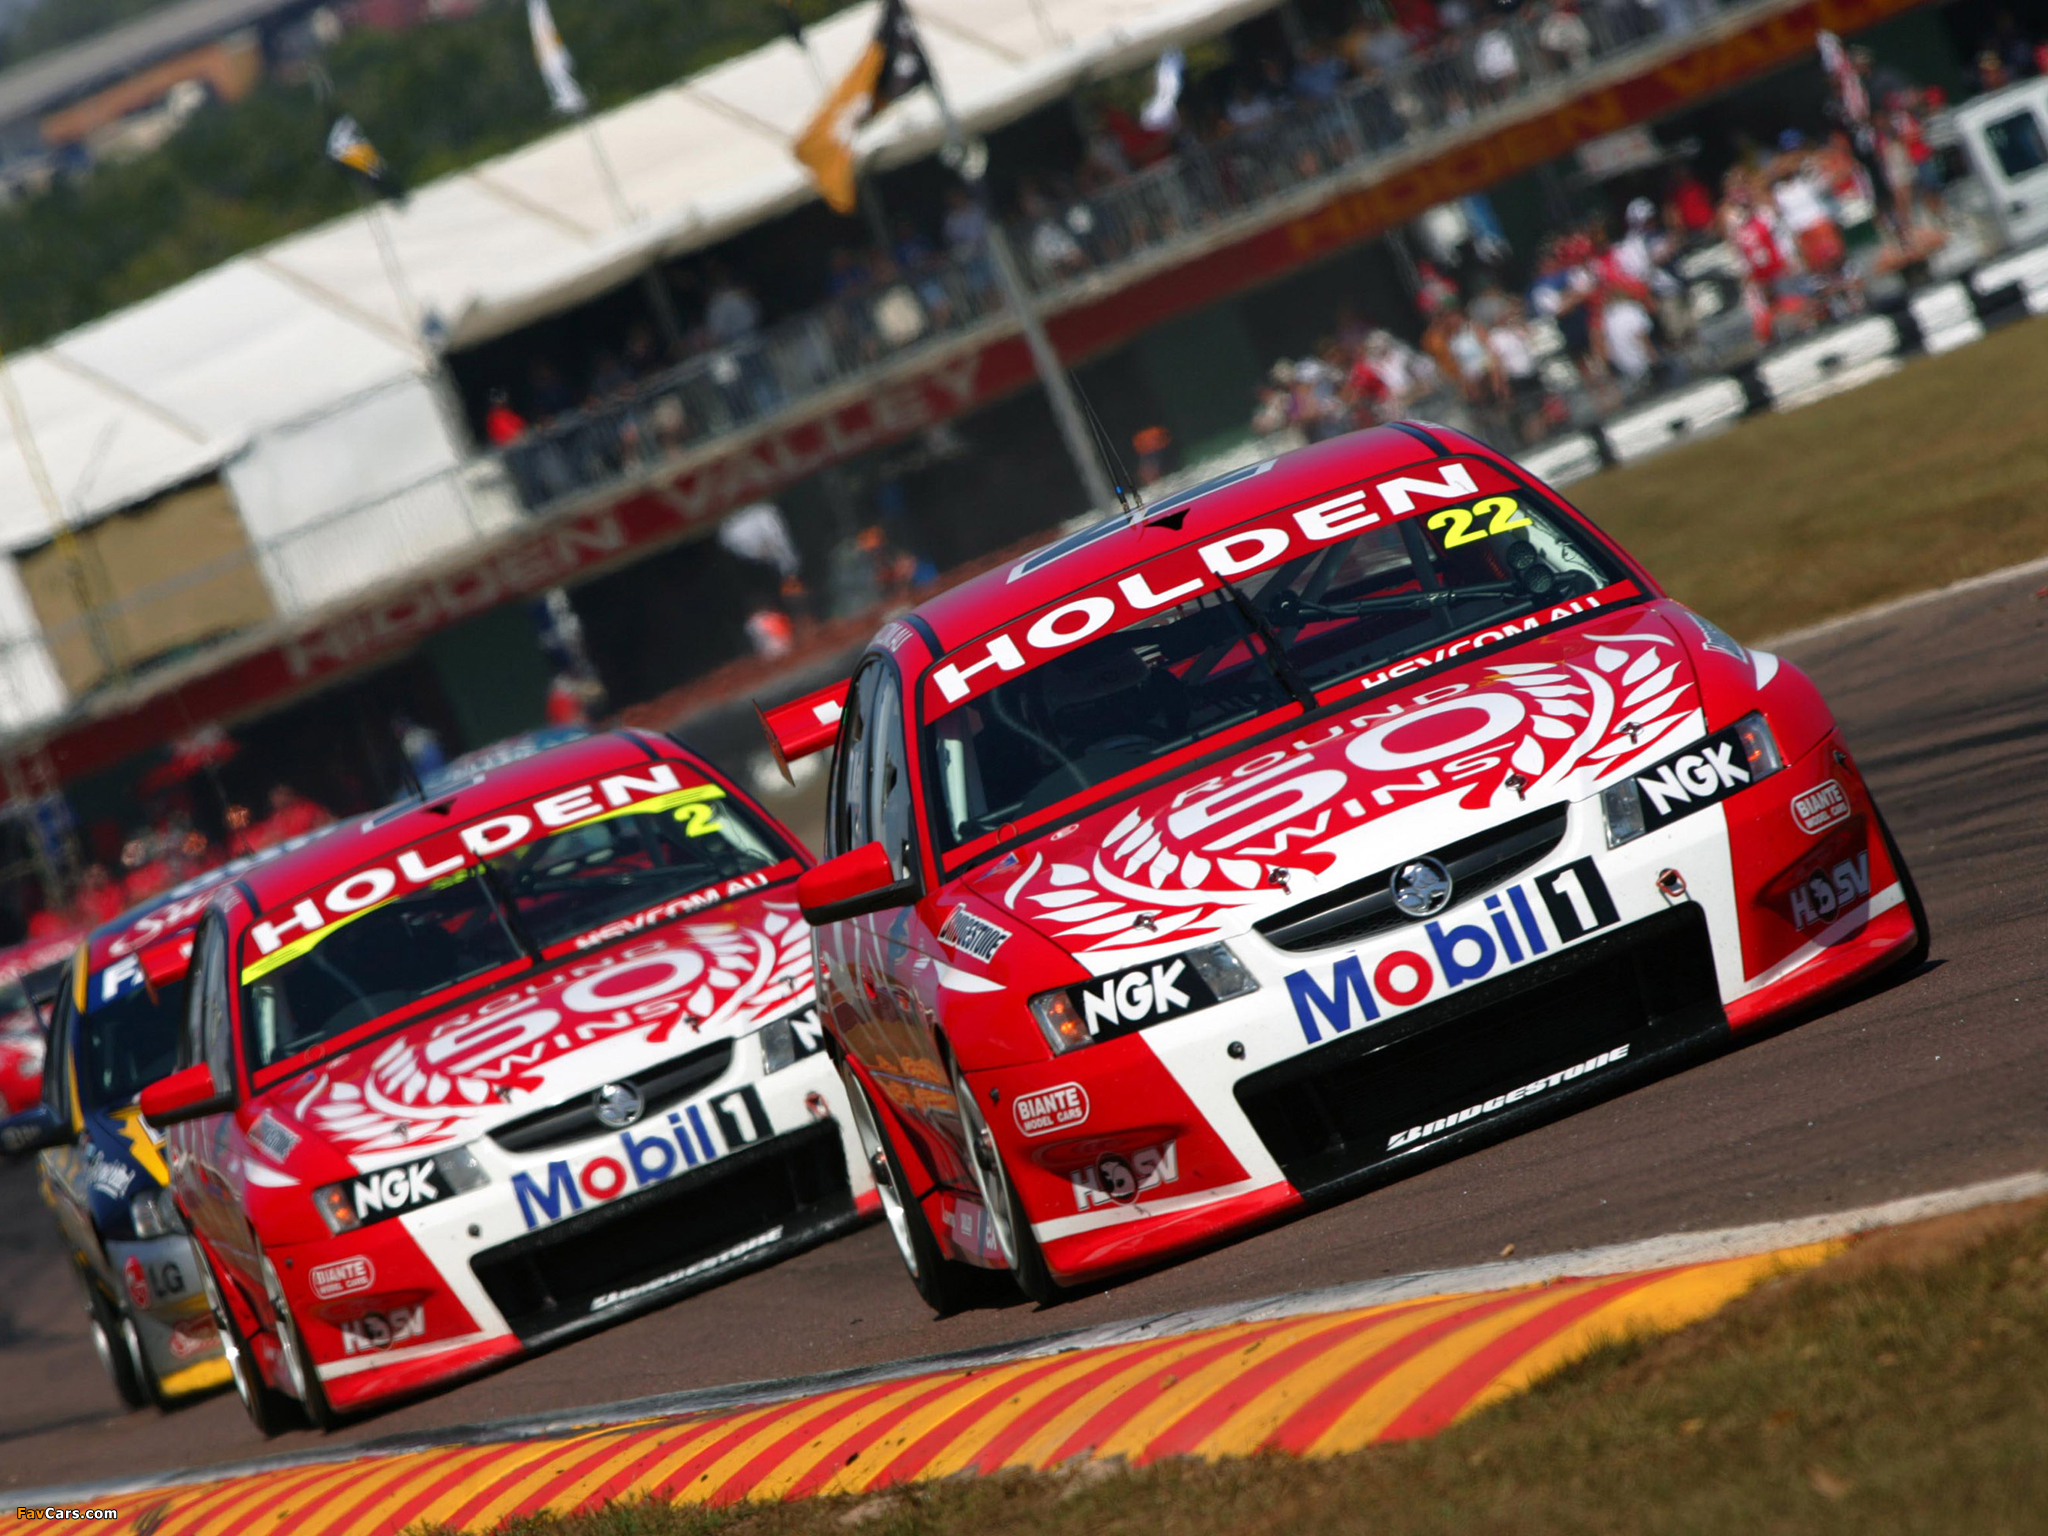 Holden VZ Commodore V8 Supercar 200506 wallpapers 2048 x 1536 2048x1536